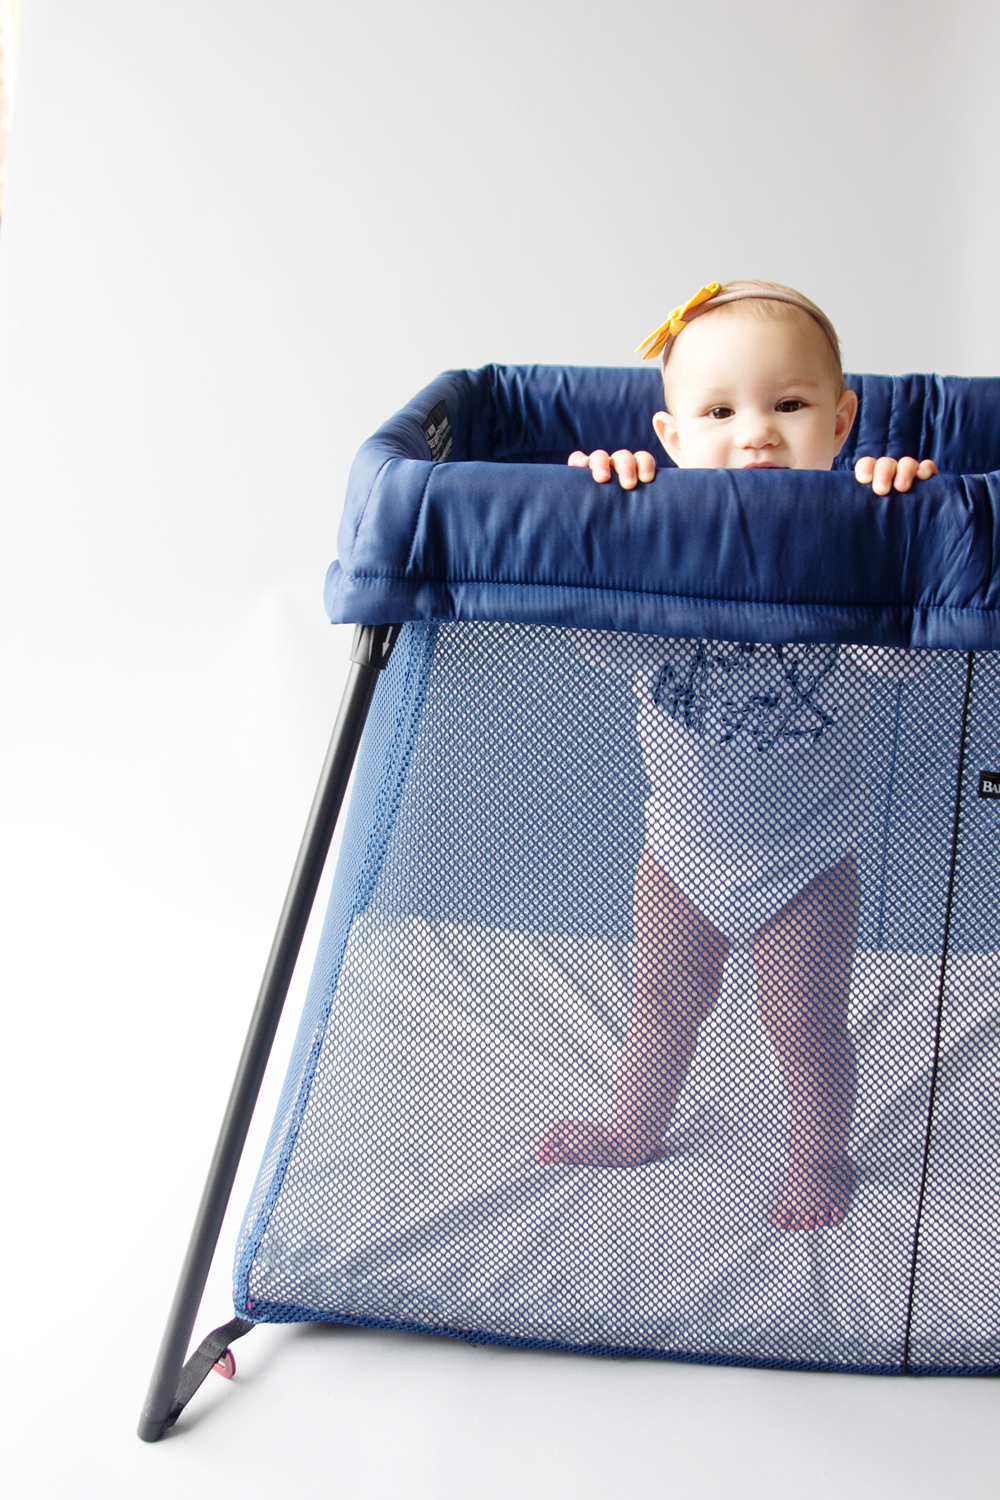 baby-bjorn-travel-crib-2